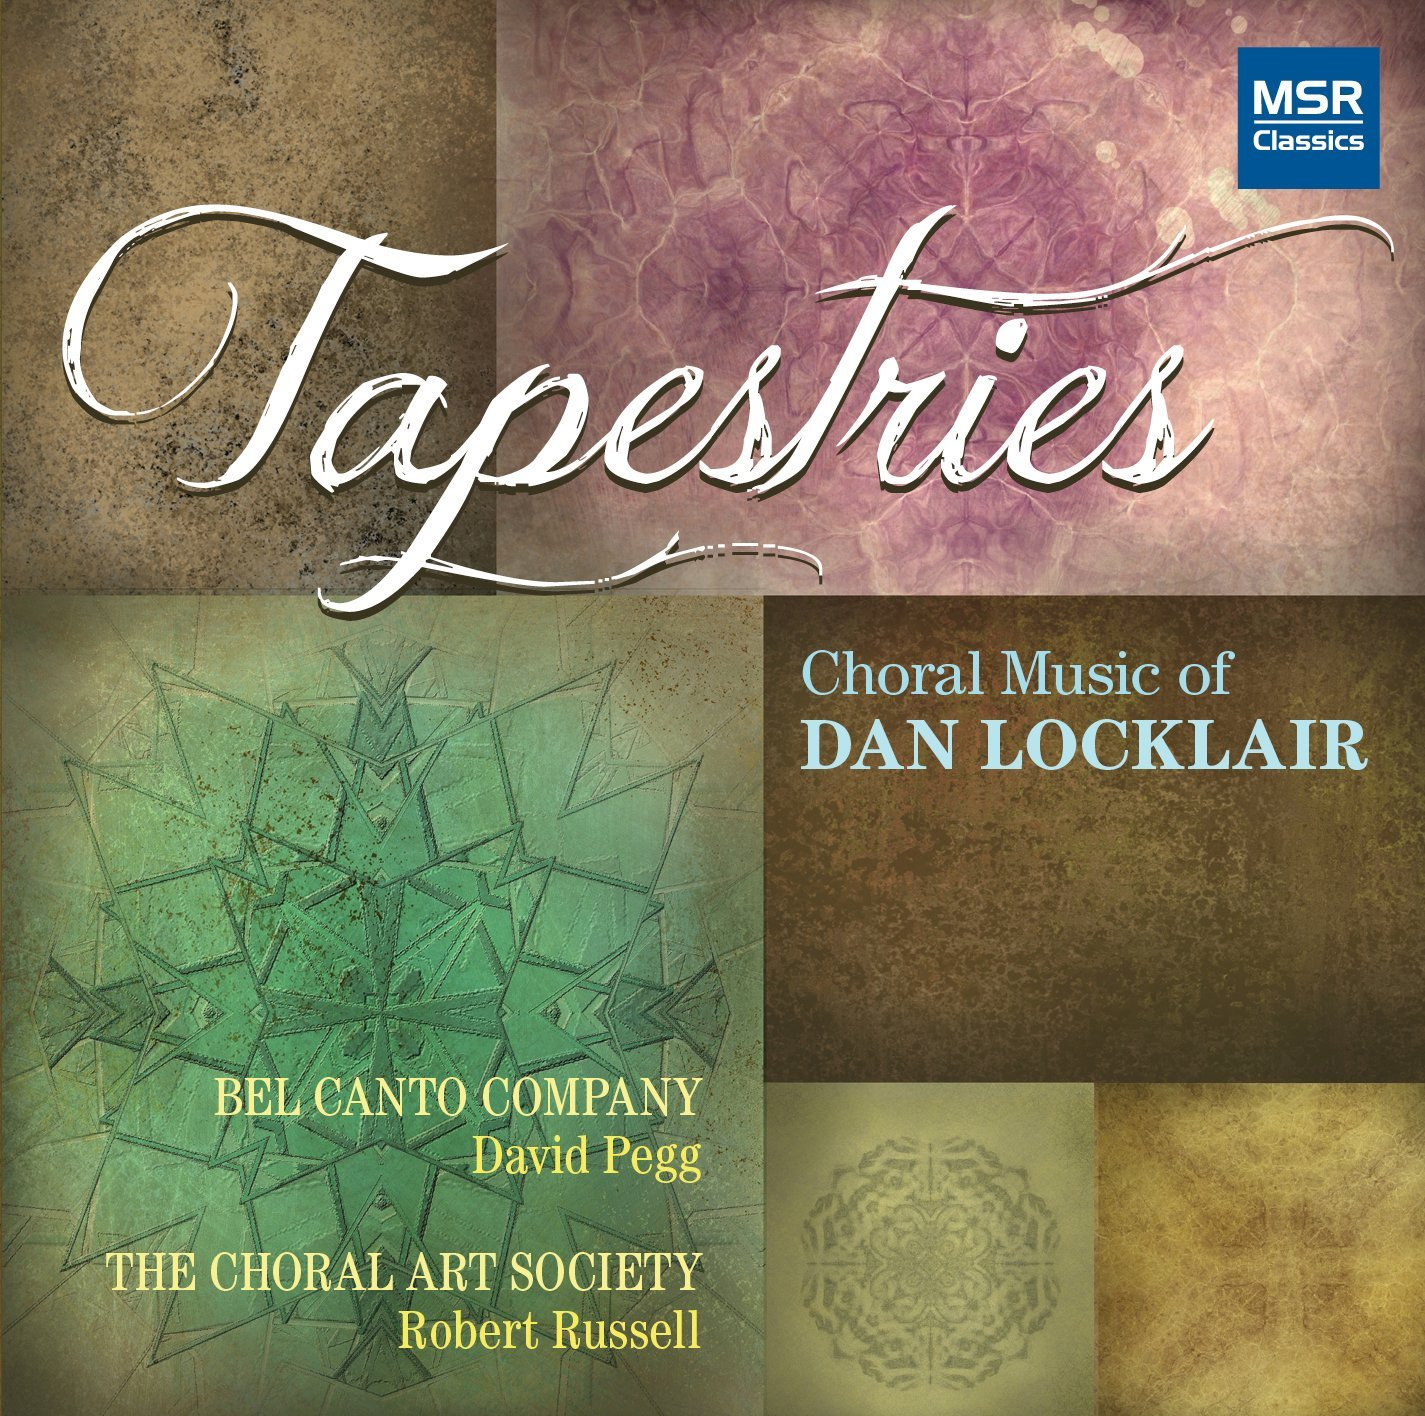 Tapestries: Choral Music of Dan Locklair [2CD] - Click Image to Close